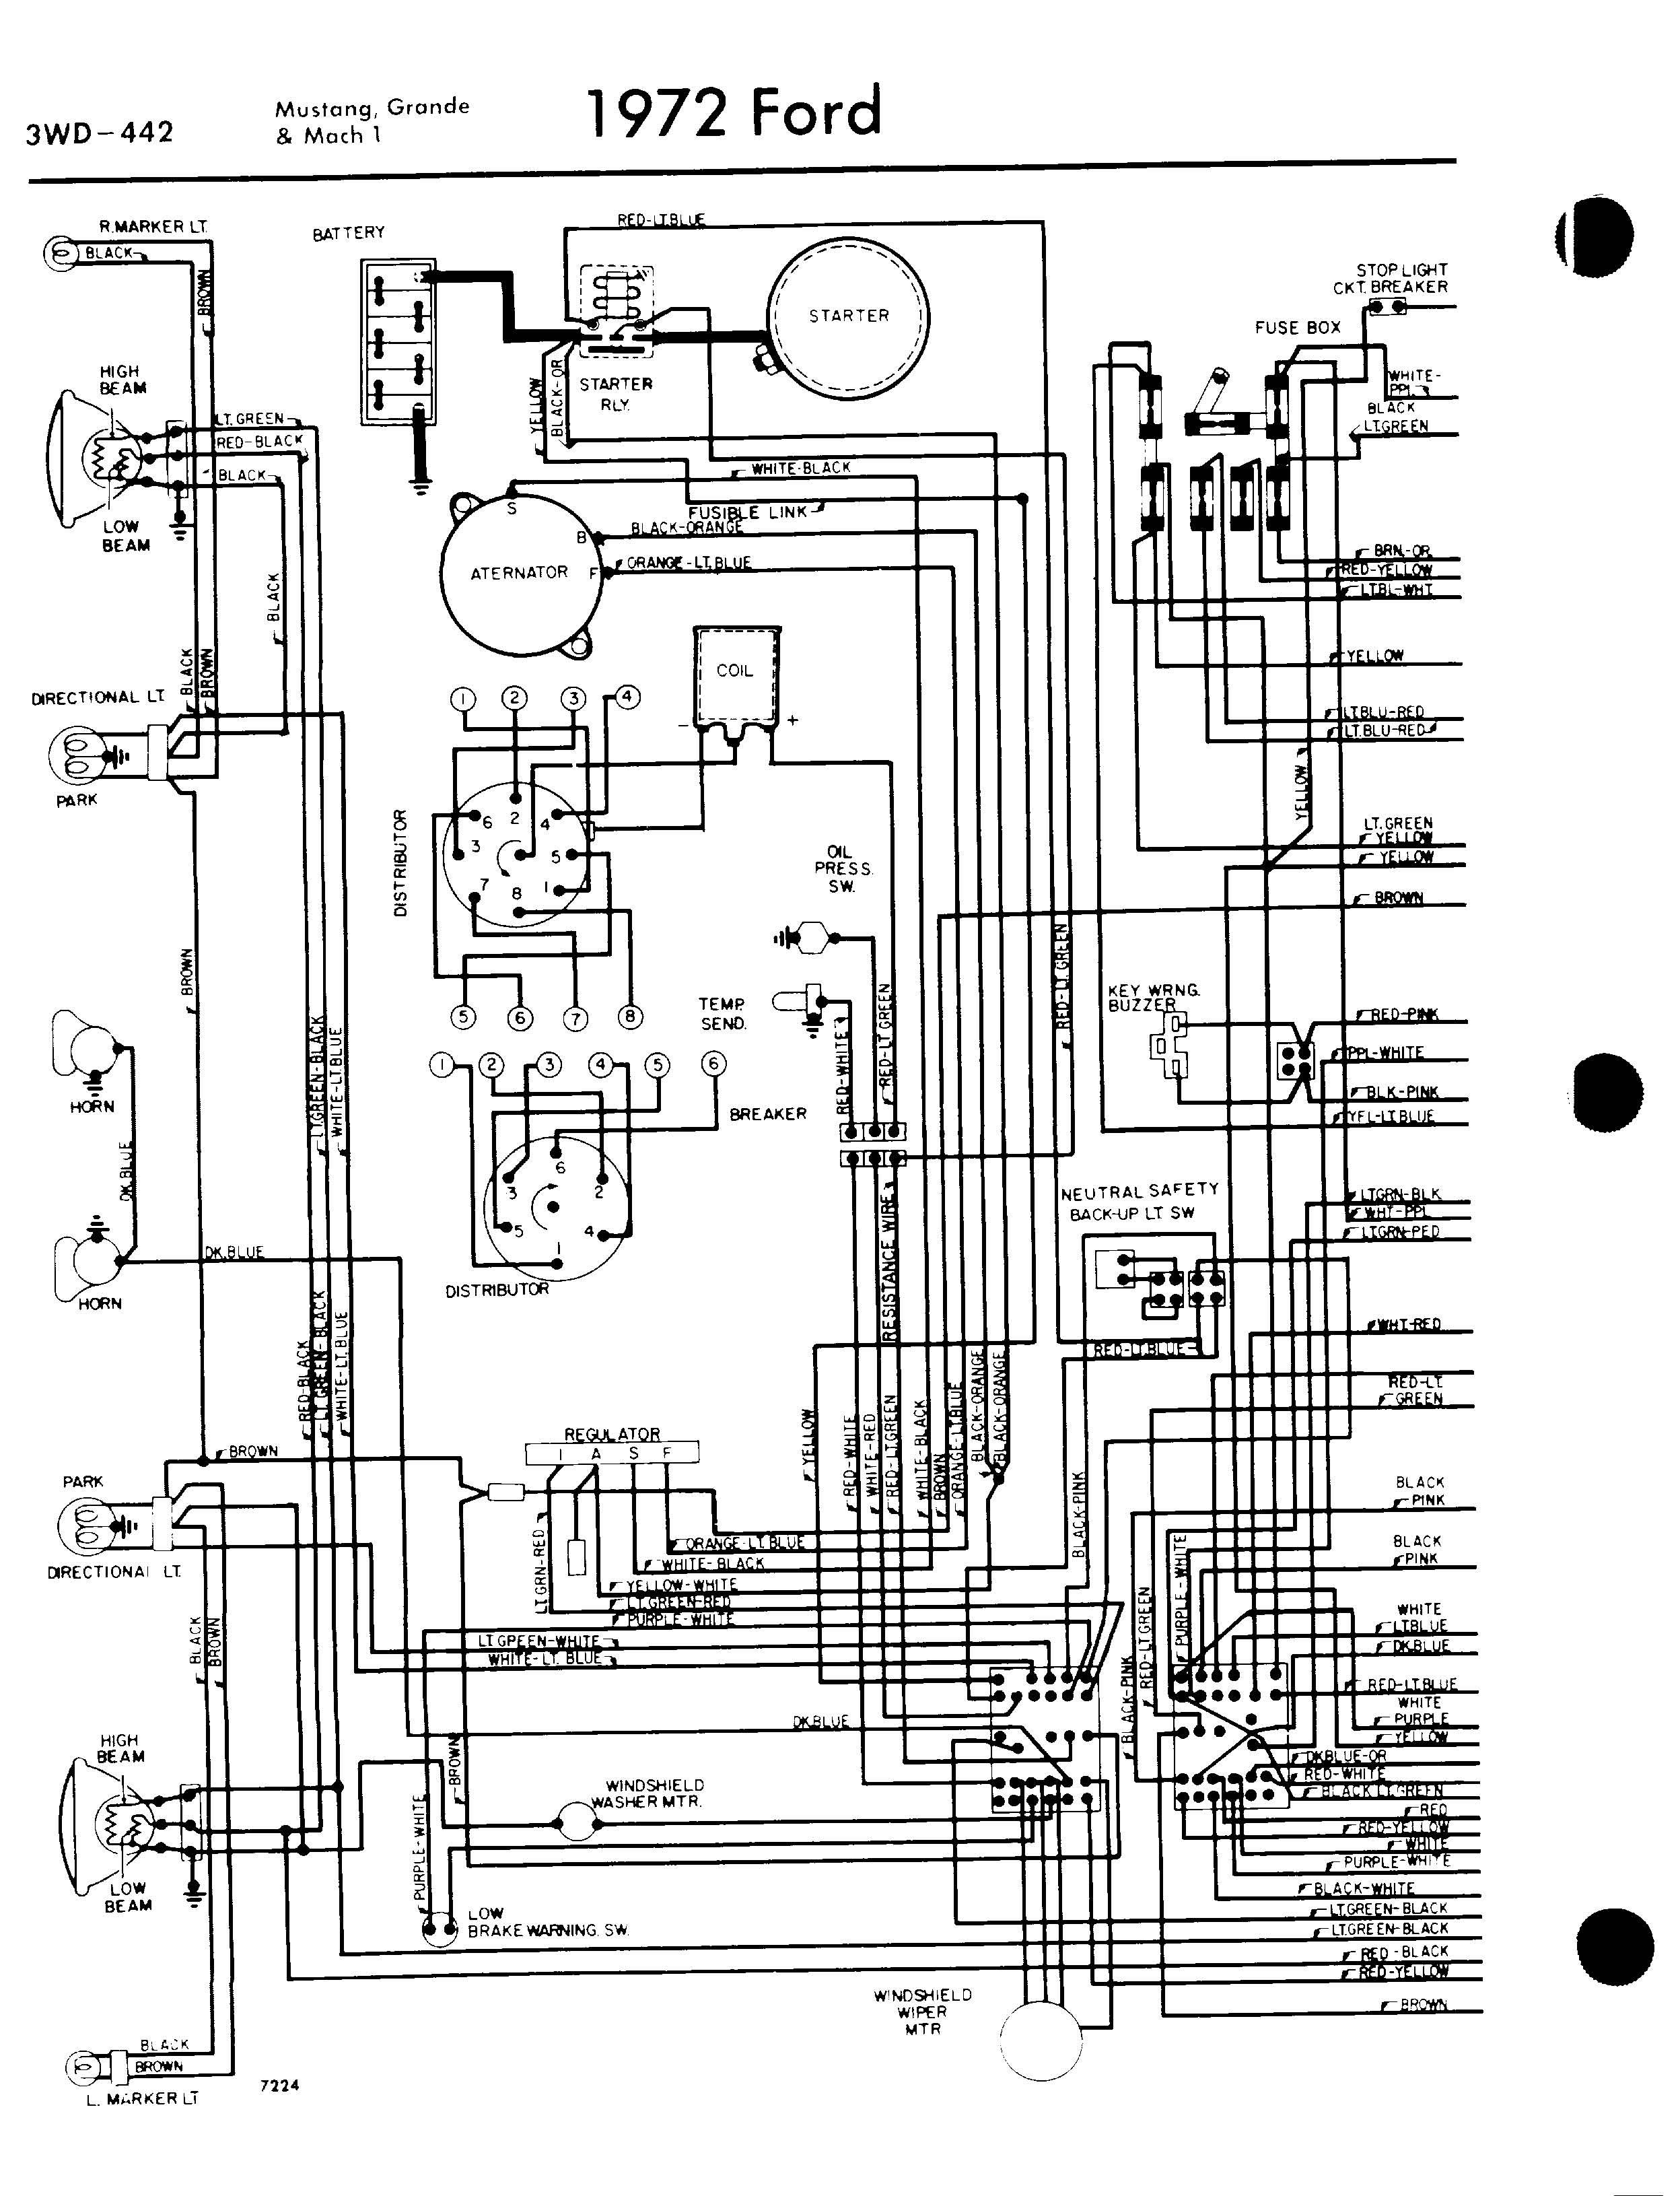 351 Cleveland Distributor Wiring Diagram Excellent Electrical Ford Engine Diagrams Rh 64 Crocodilecruisedarwin Com Firing Order